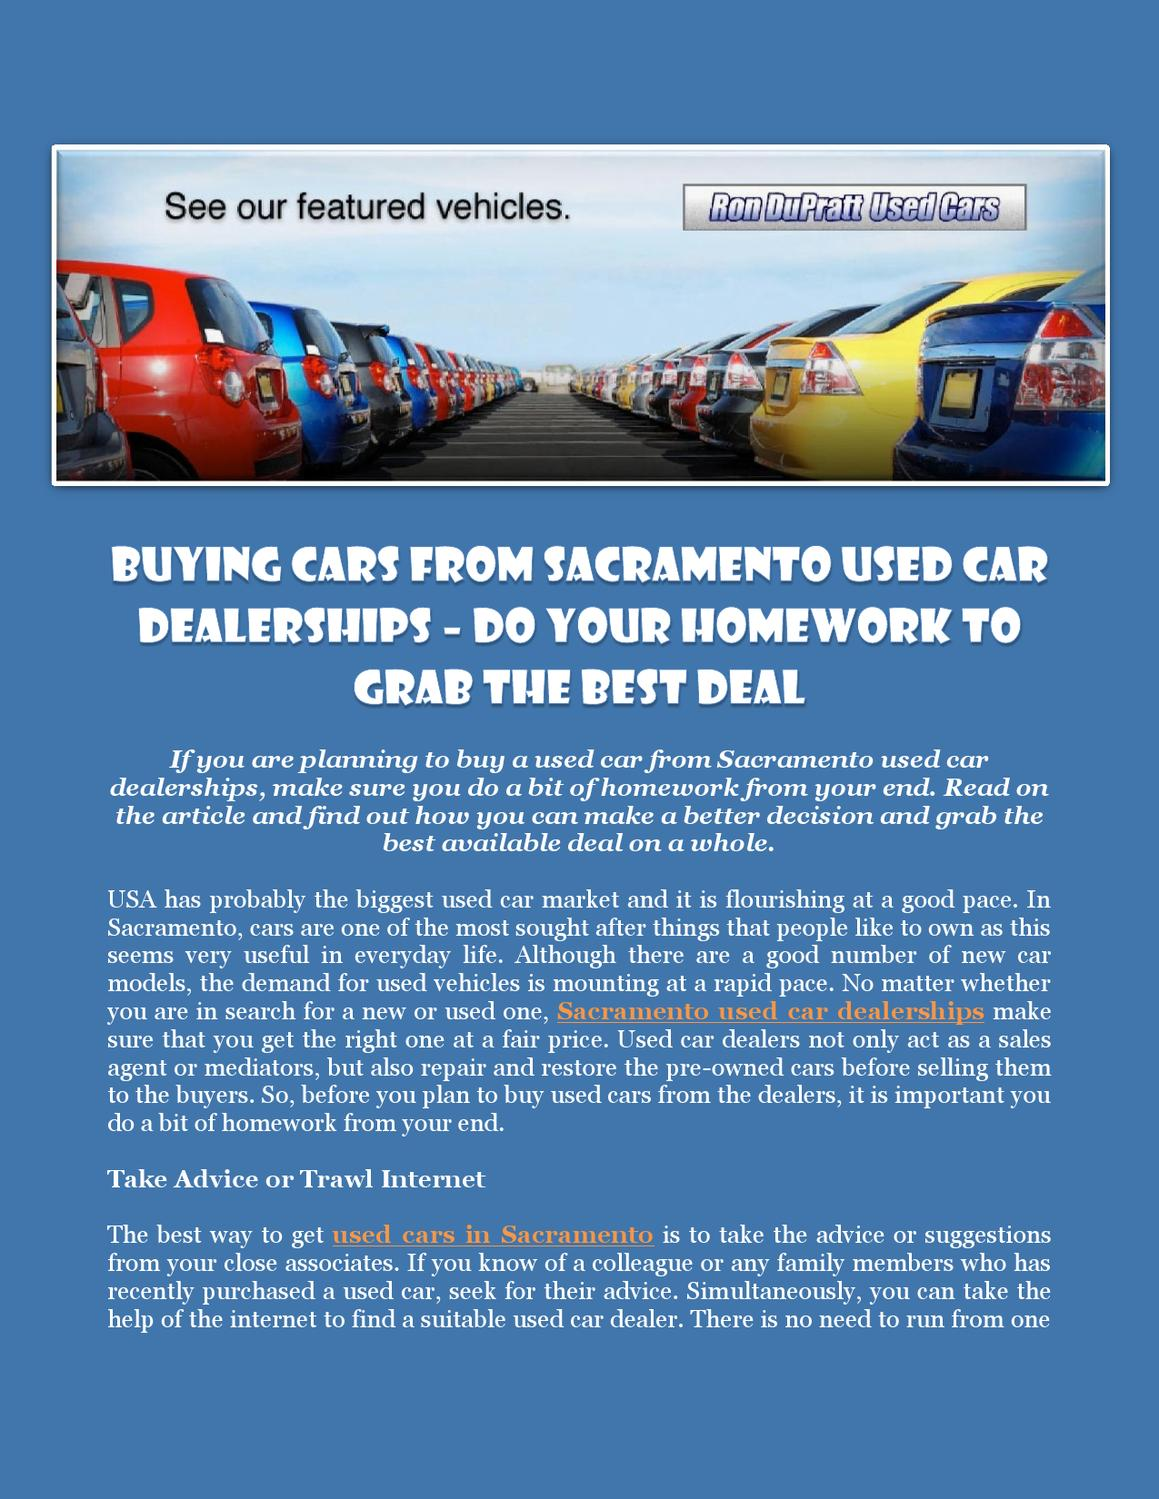 Dealerships That Buy Cars >> Buying Cars From Sacramento Used Car Dealerships Do Your